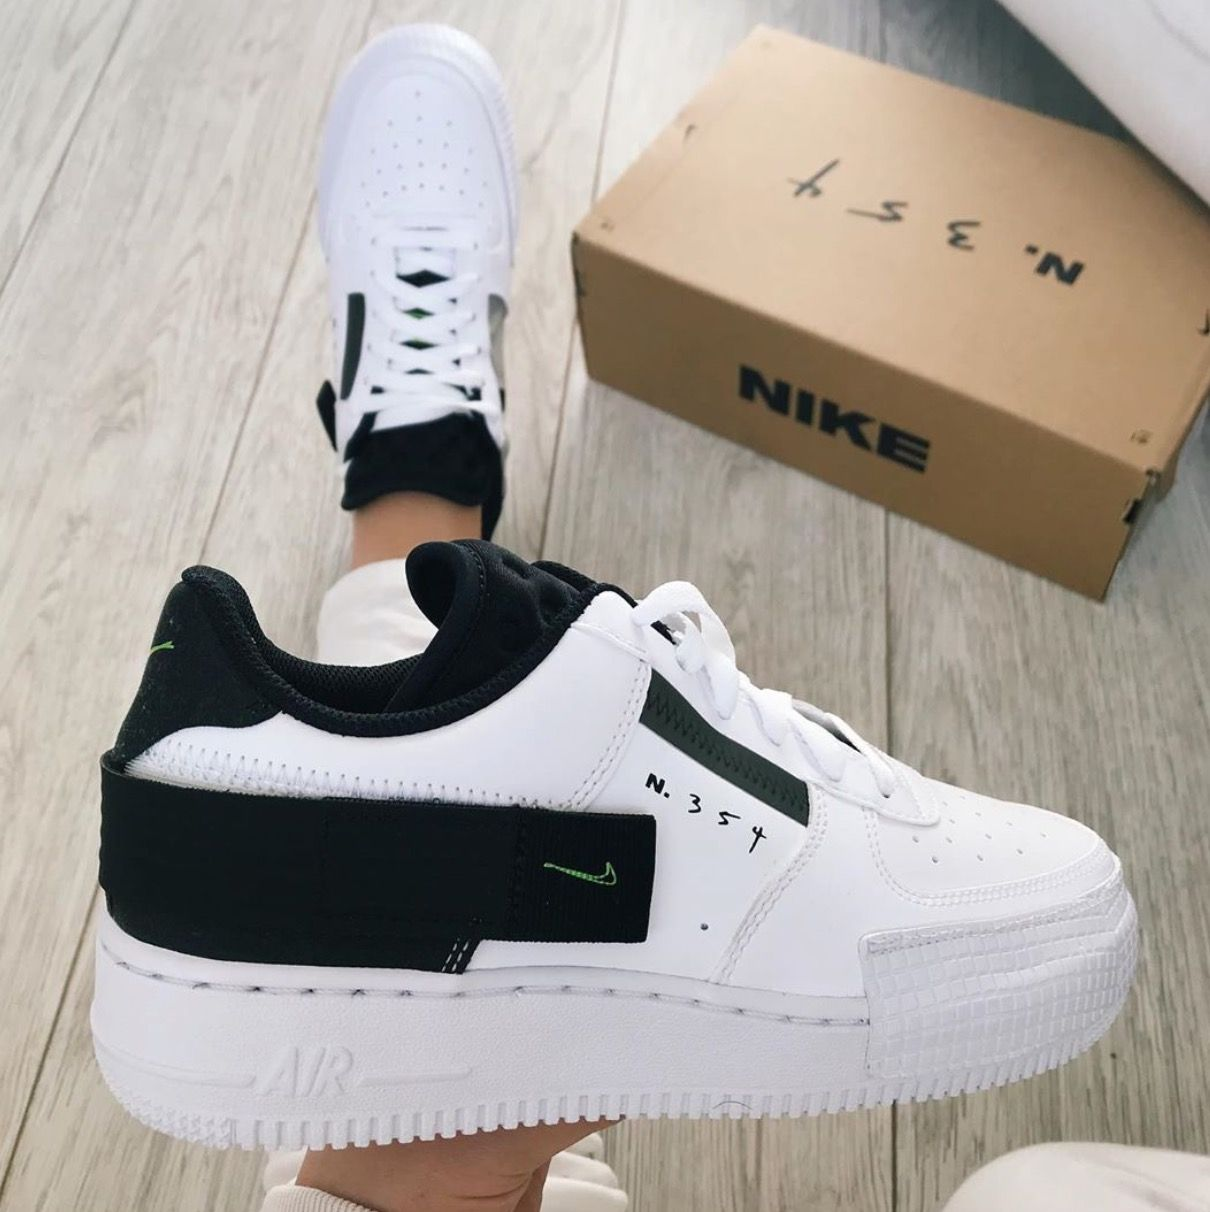 Sneakers fashion, Hype shoes, Nike air